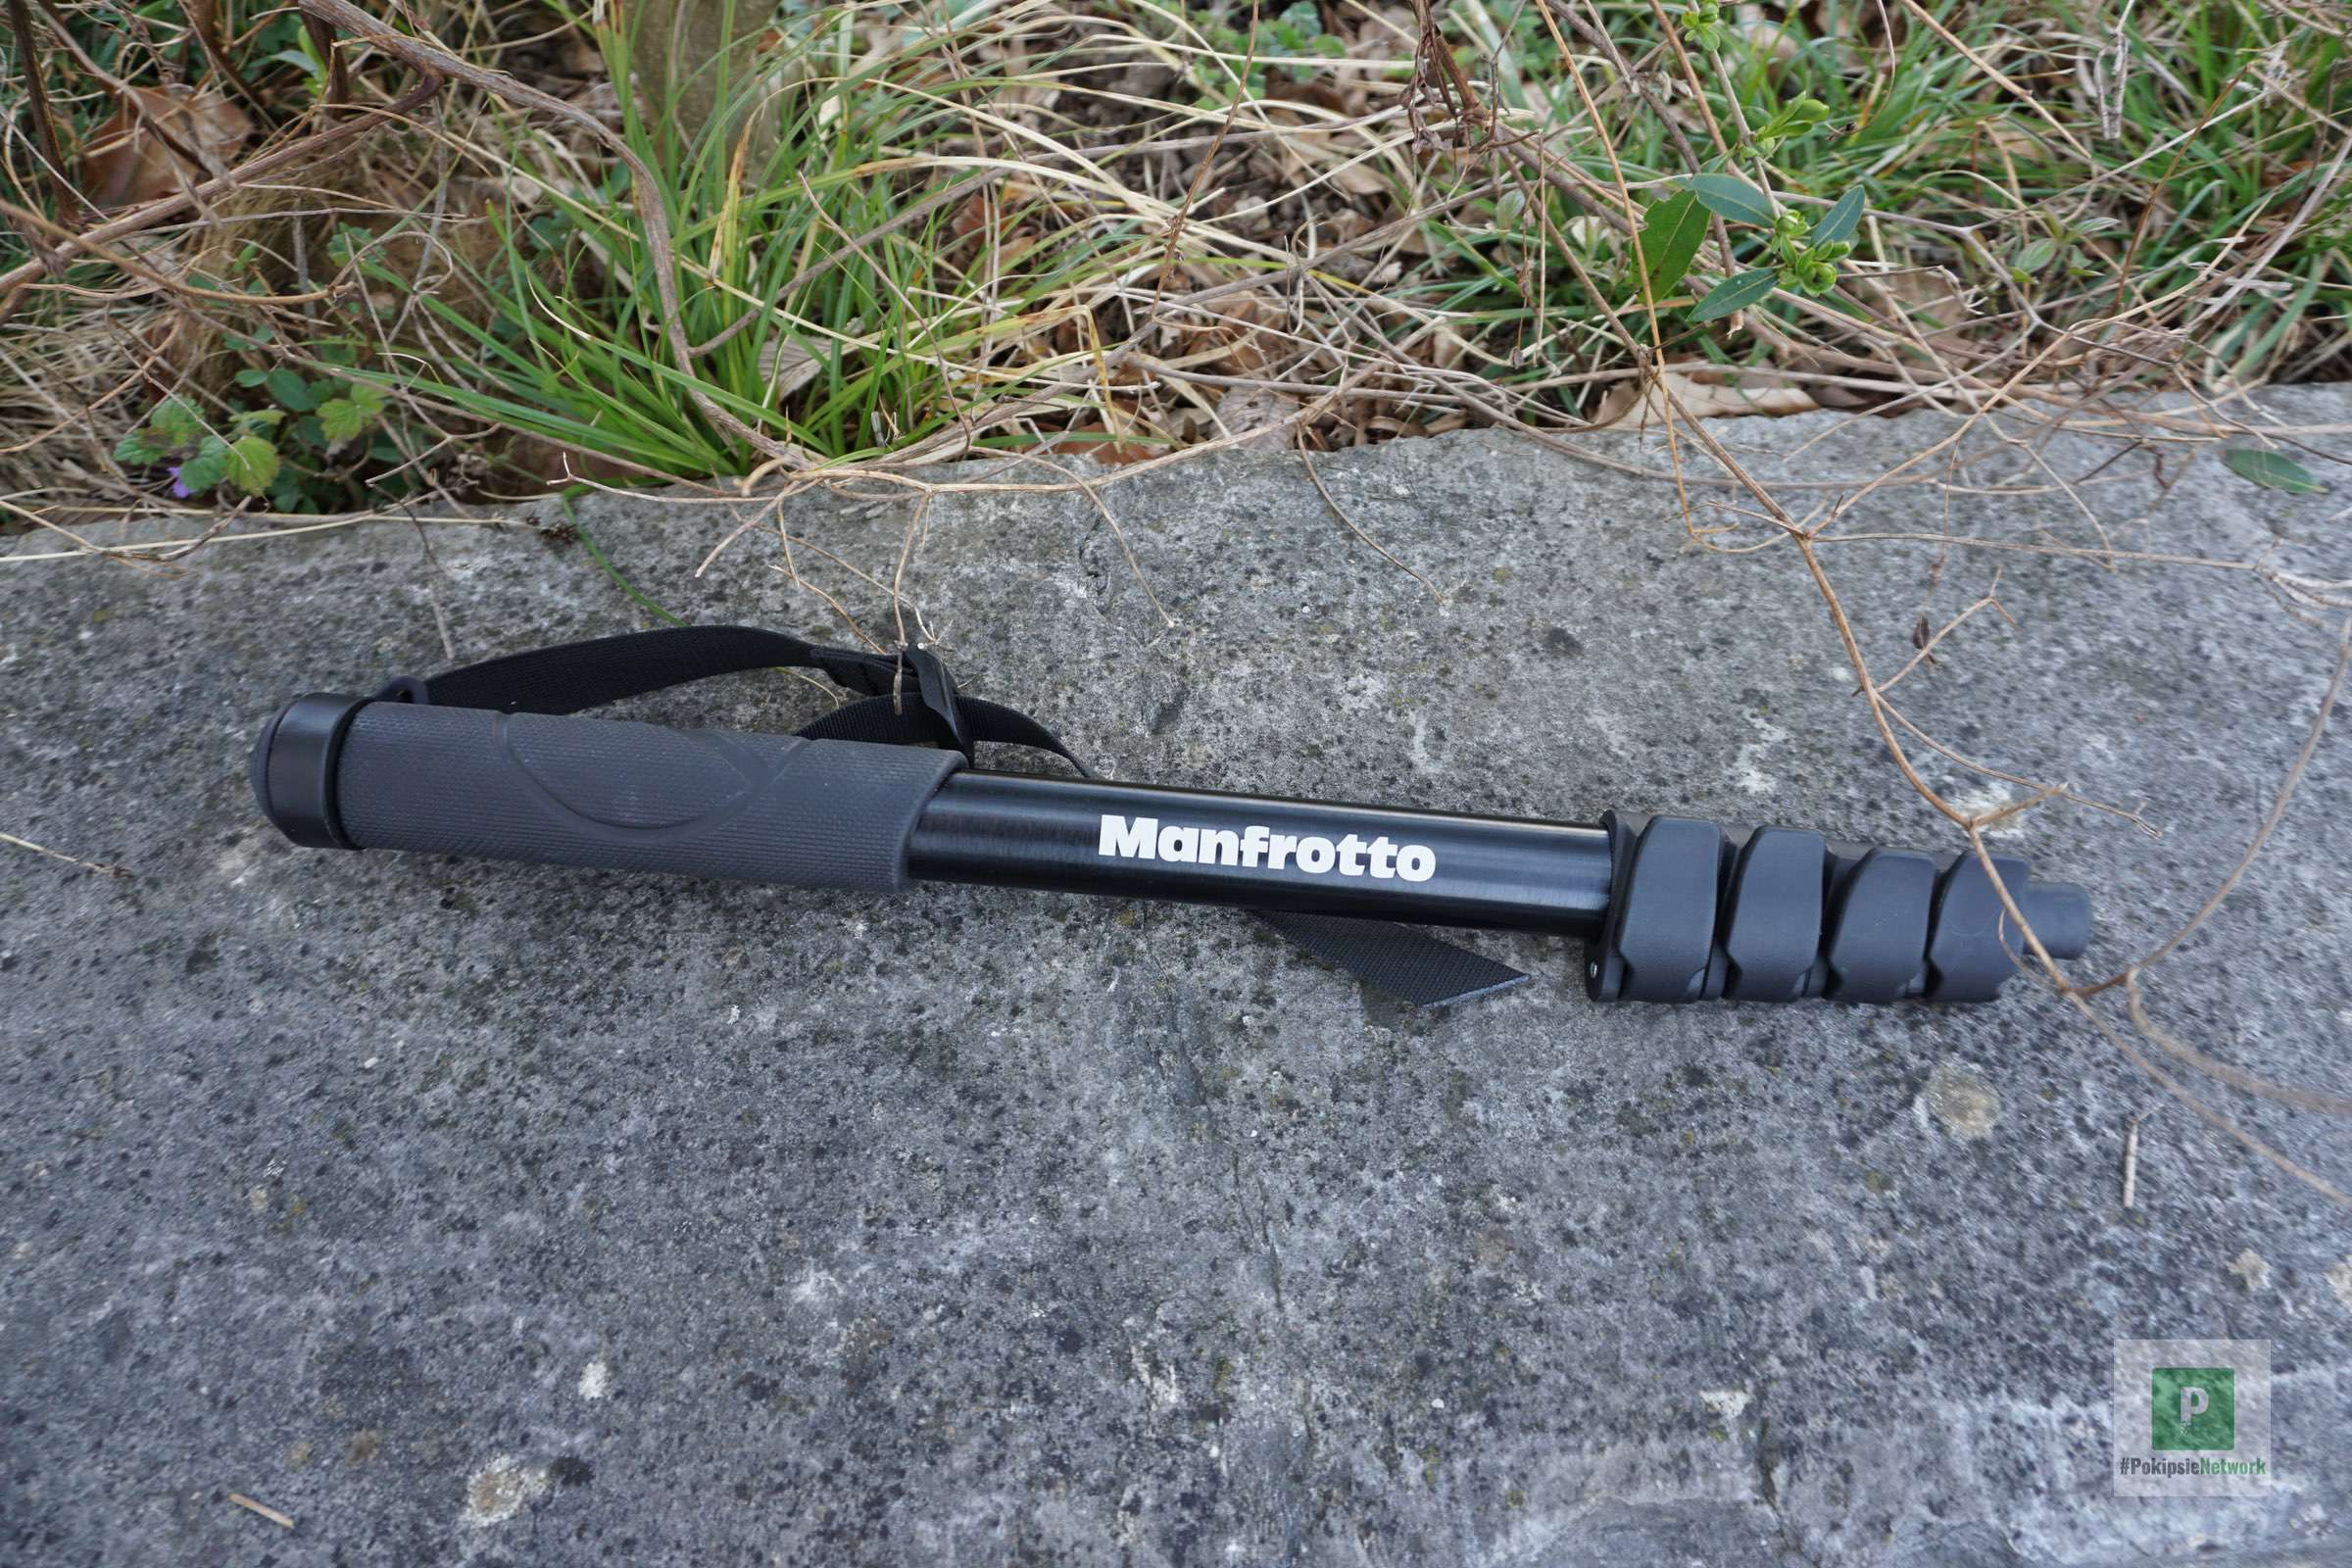 Manfrotto Monopod Test